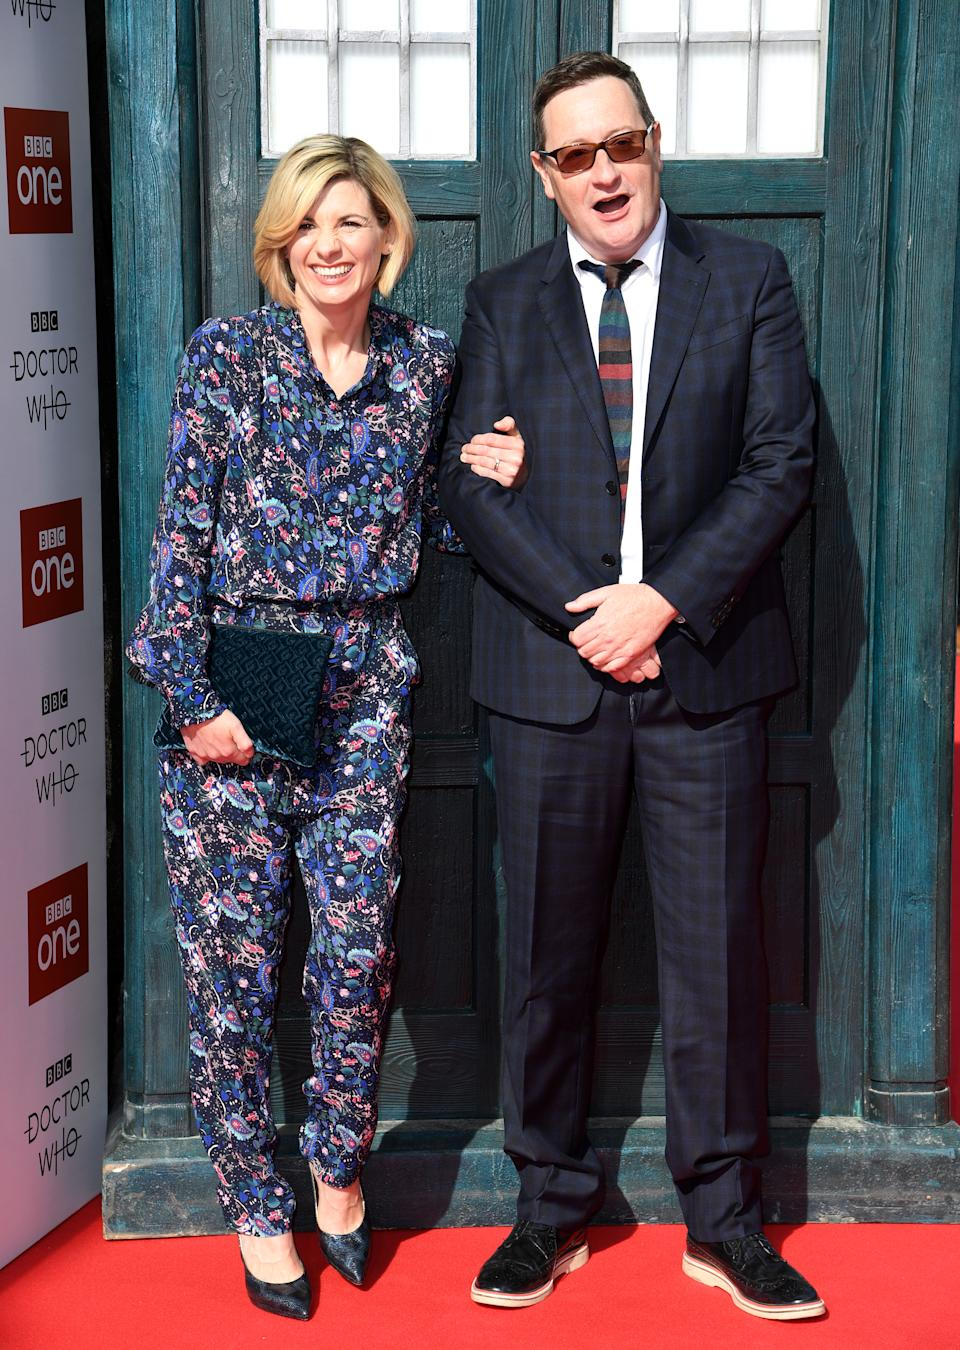 Jodie Whittaker and Chris Chibnall attending the Doctor Who premiere held at The Light Cinema at The Moor, Sheffield. Picture credit should read: Doug Peters/EMPICS